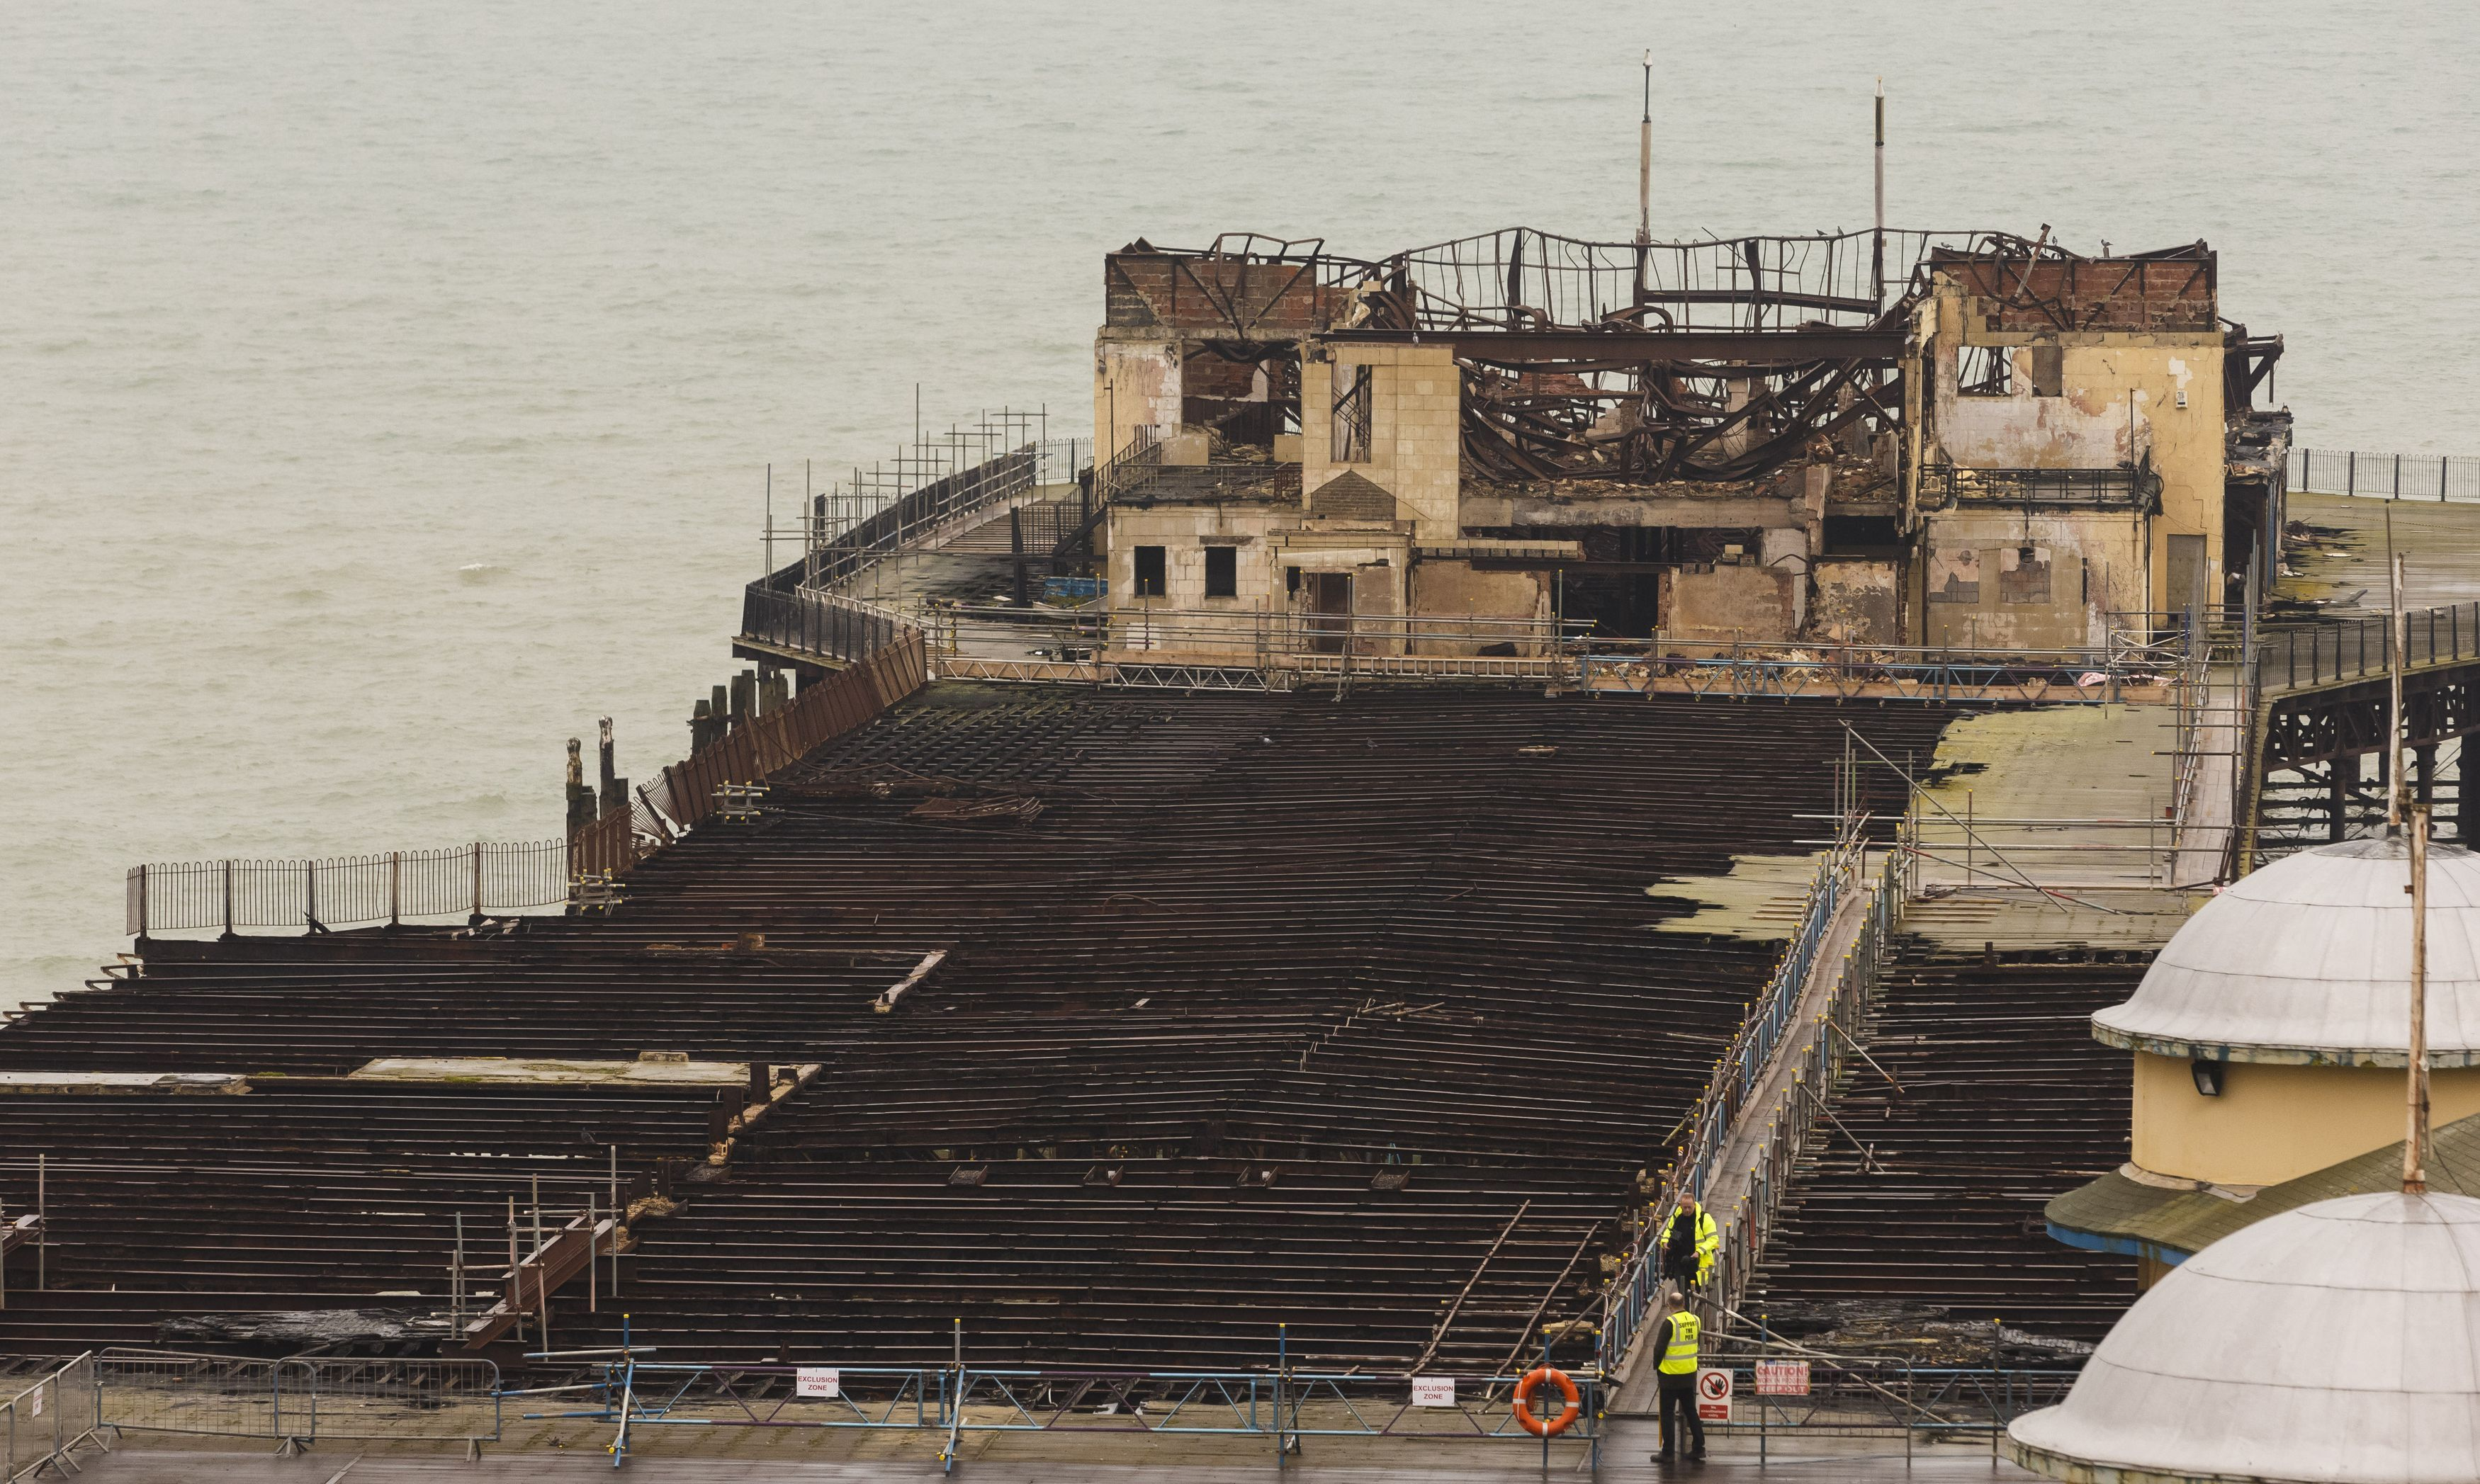 Fire Ravaged Hastings Pier